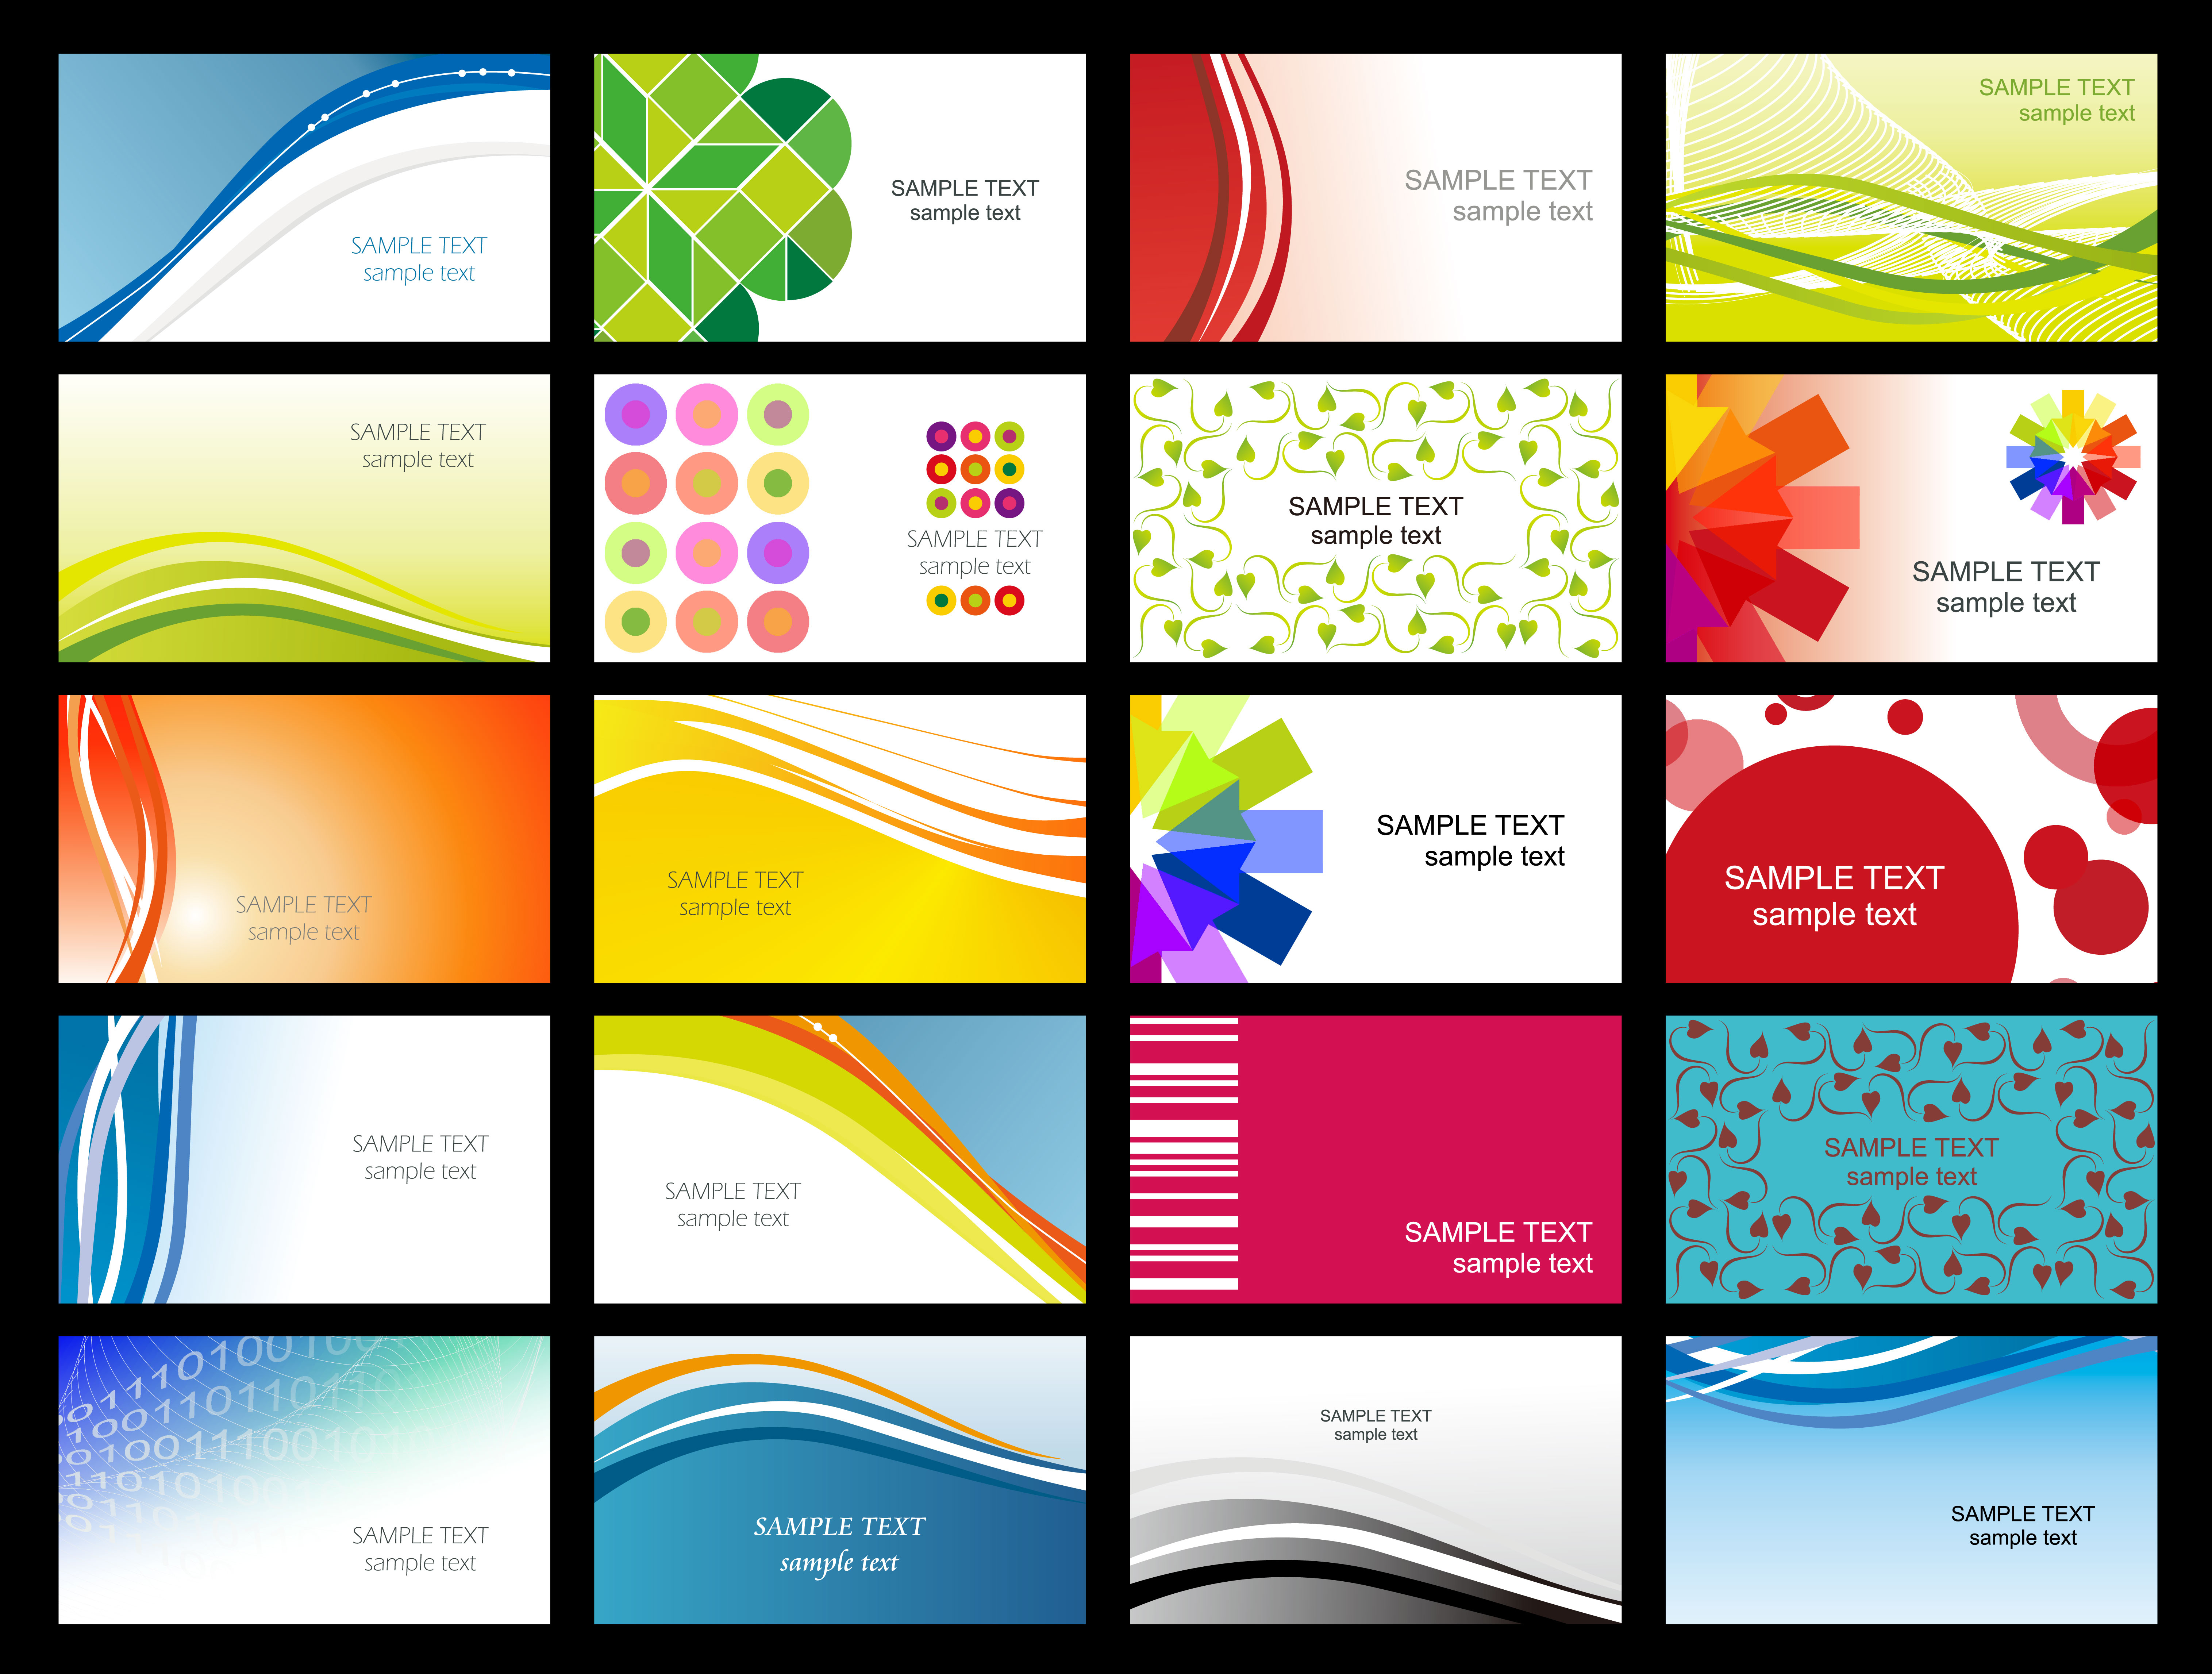 Free Printable Business Card Templates Sample   Get Sniffer - Free Printable Business Card Templates For Word